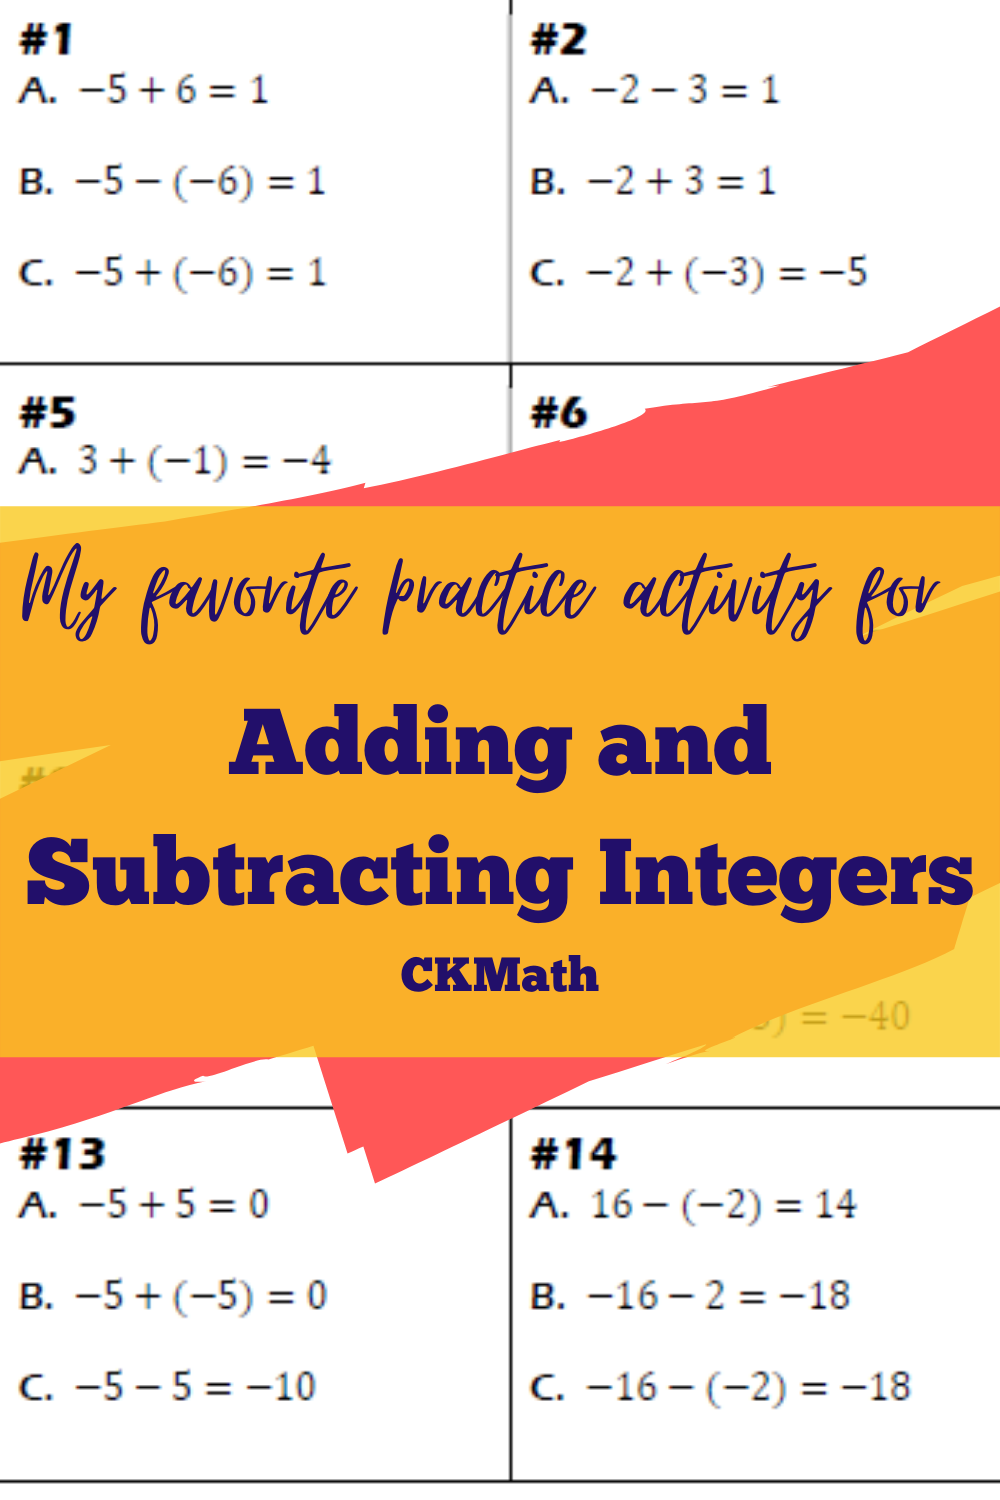 Two Truths And A Lie W Adding And Subtracting Integers Maths Activities Middle School High School Math Lessons Adding And Subtracting Integers [ 1500 x 1000 Pixel ]